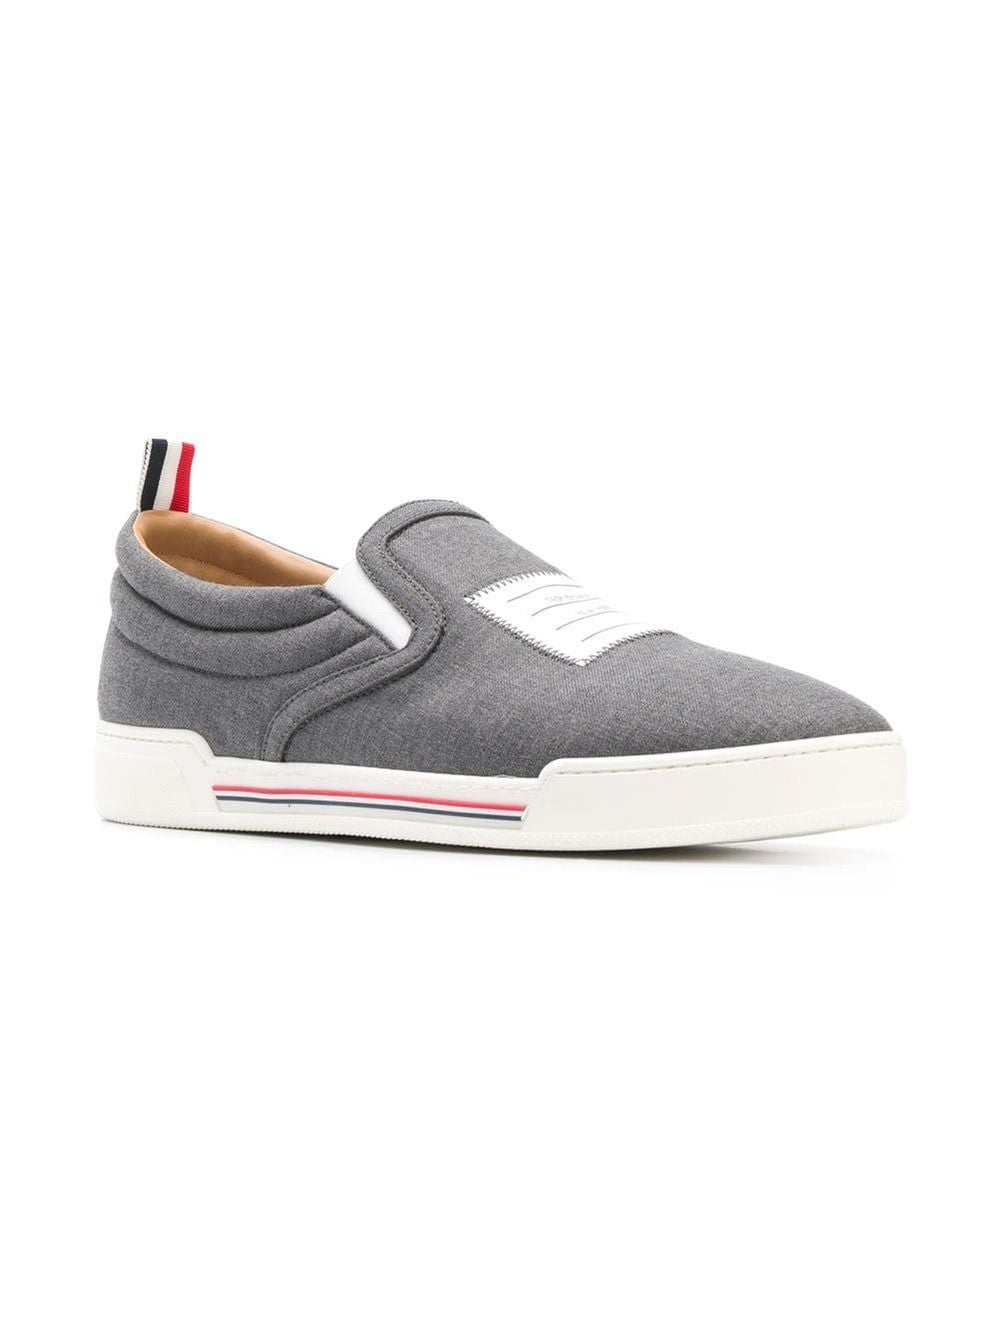 Grey 4-Bar Paper Label Slip-On Trainer